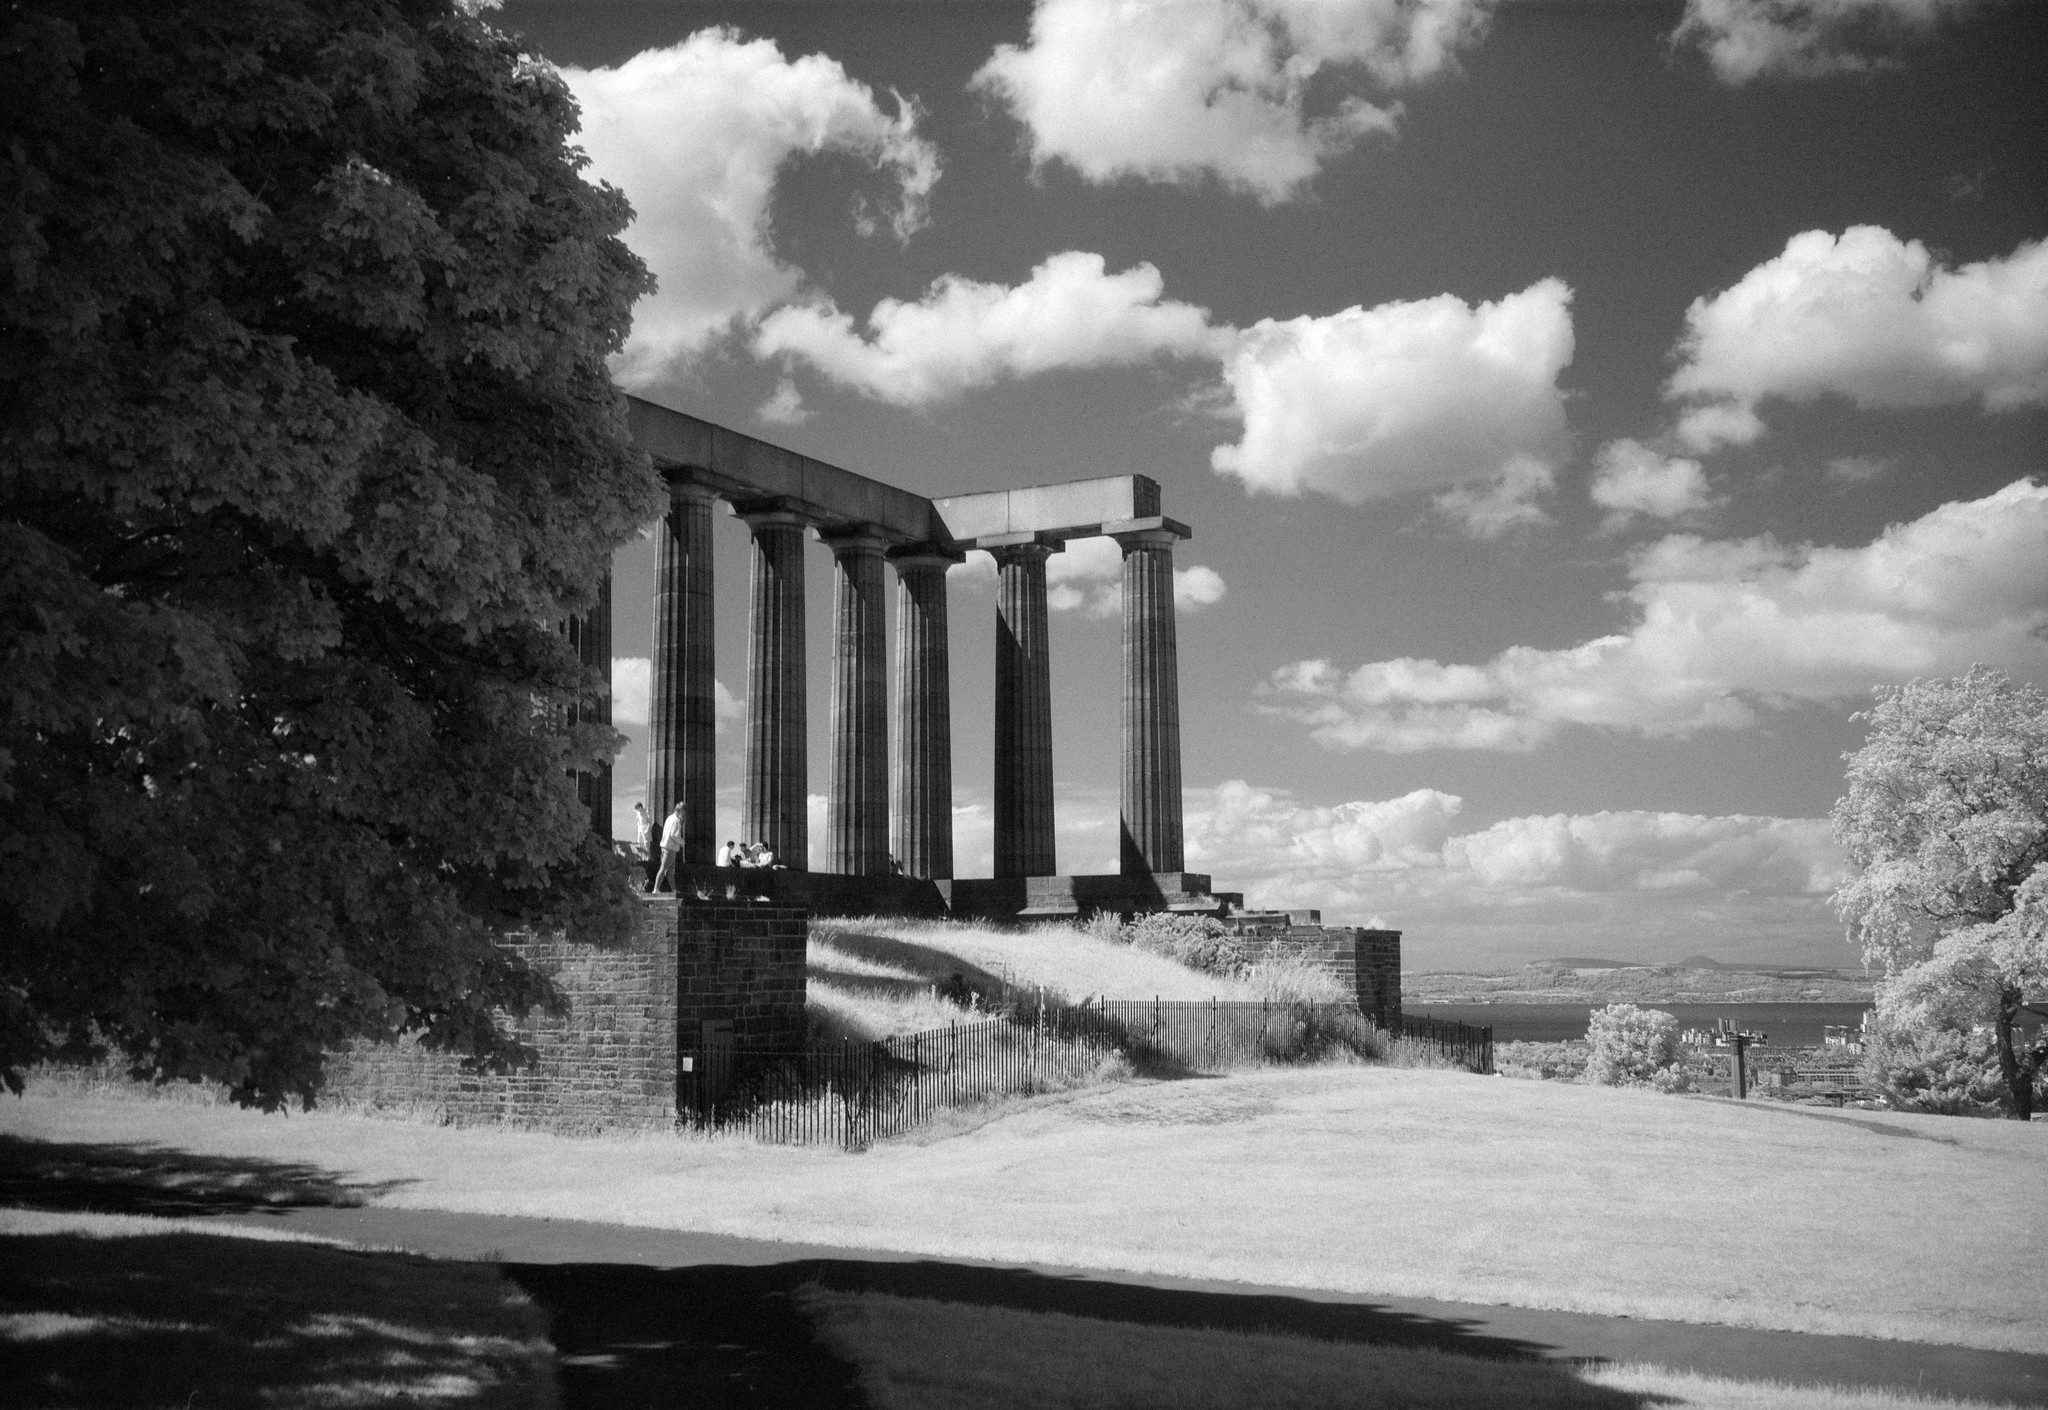 @BNRYNLDS Replying to @ILFORDPhoto I imagine I'm too late, and it may be a previous submission... But here's some Sunny Edinburgh goodness #shotonsfx for the #ilfordphoto #fridayfavourites